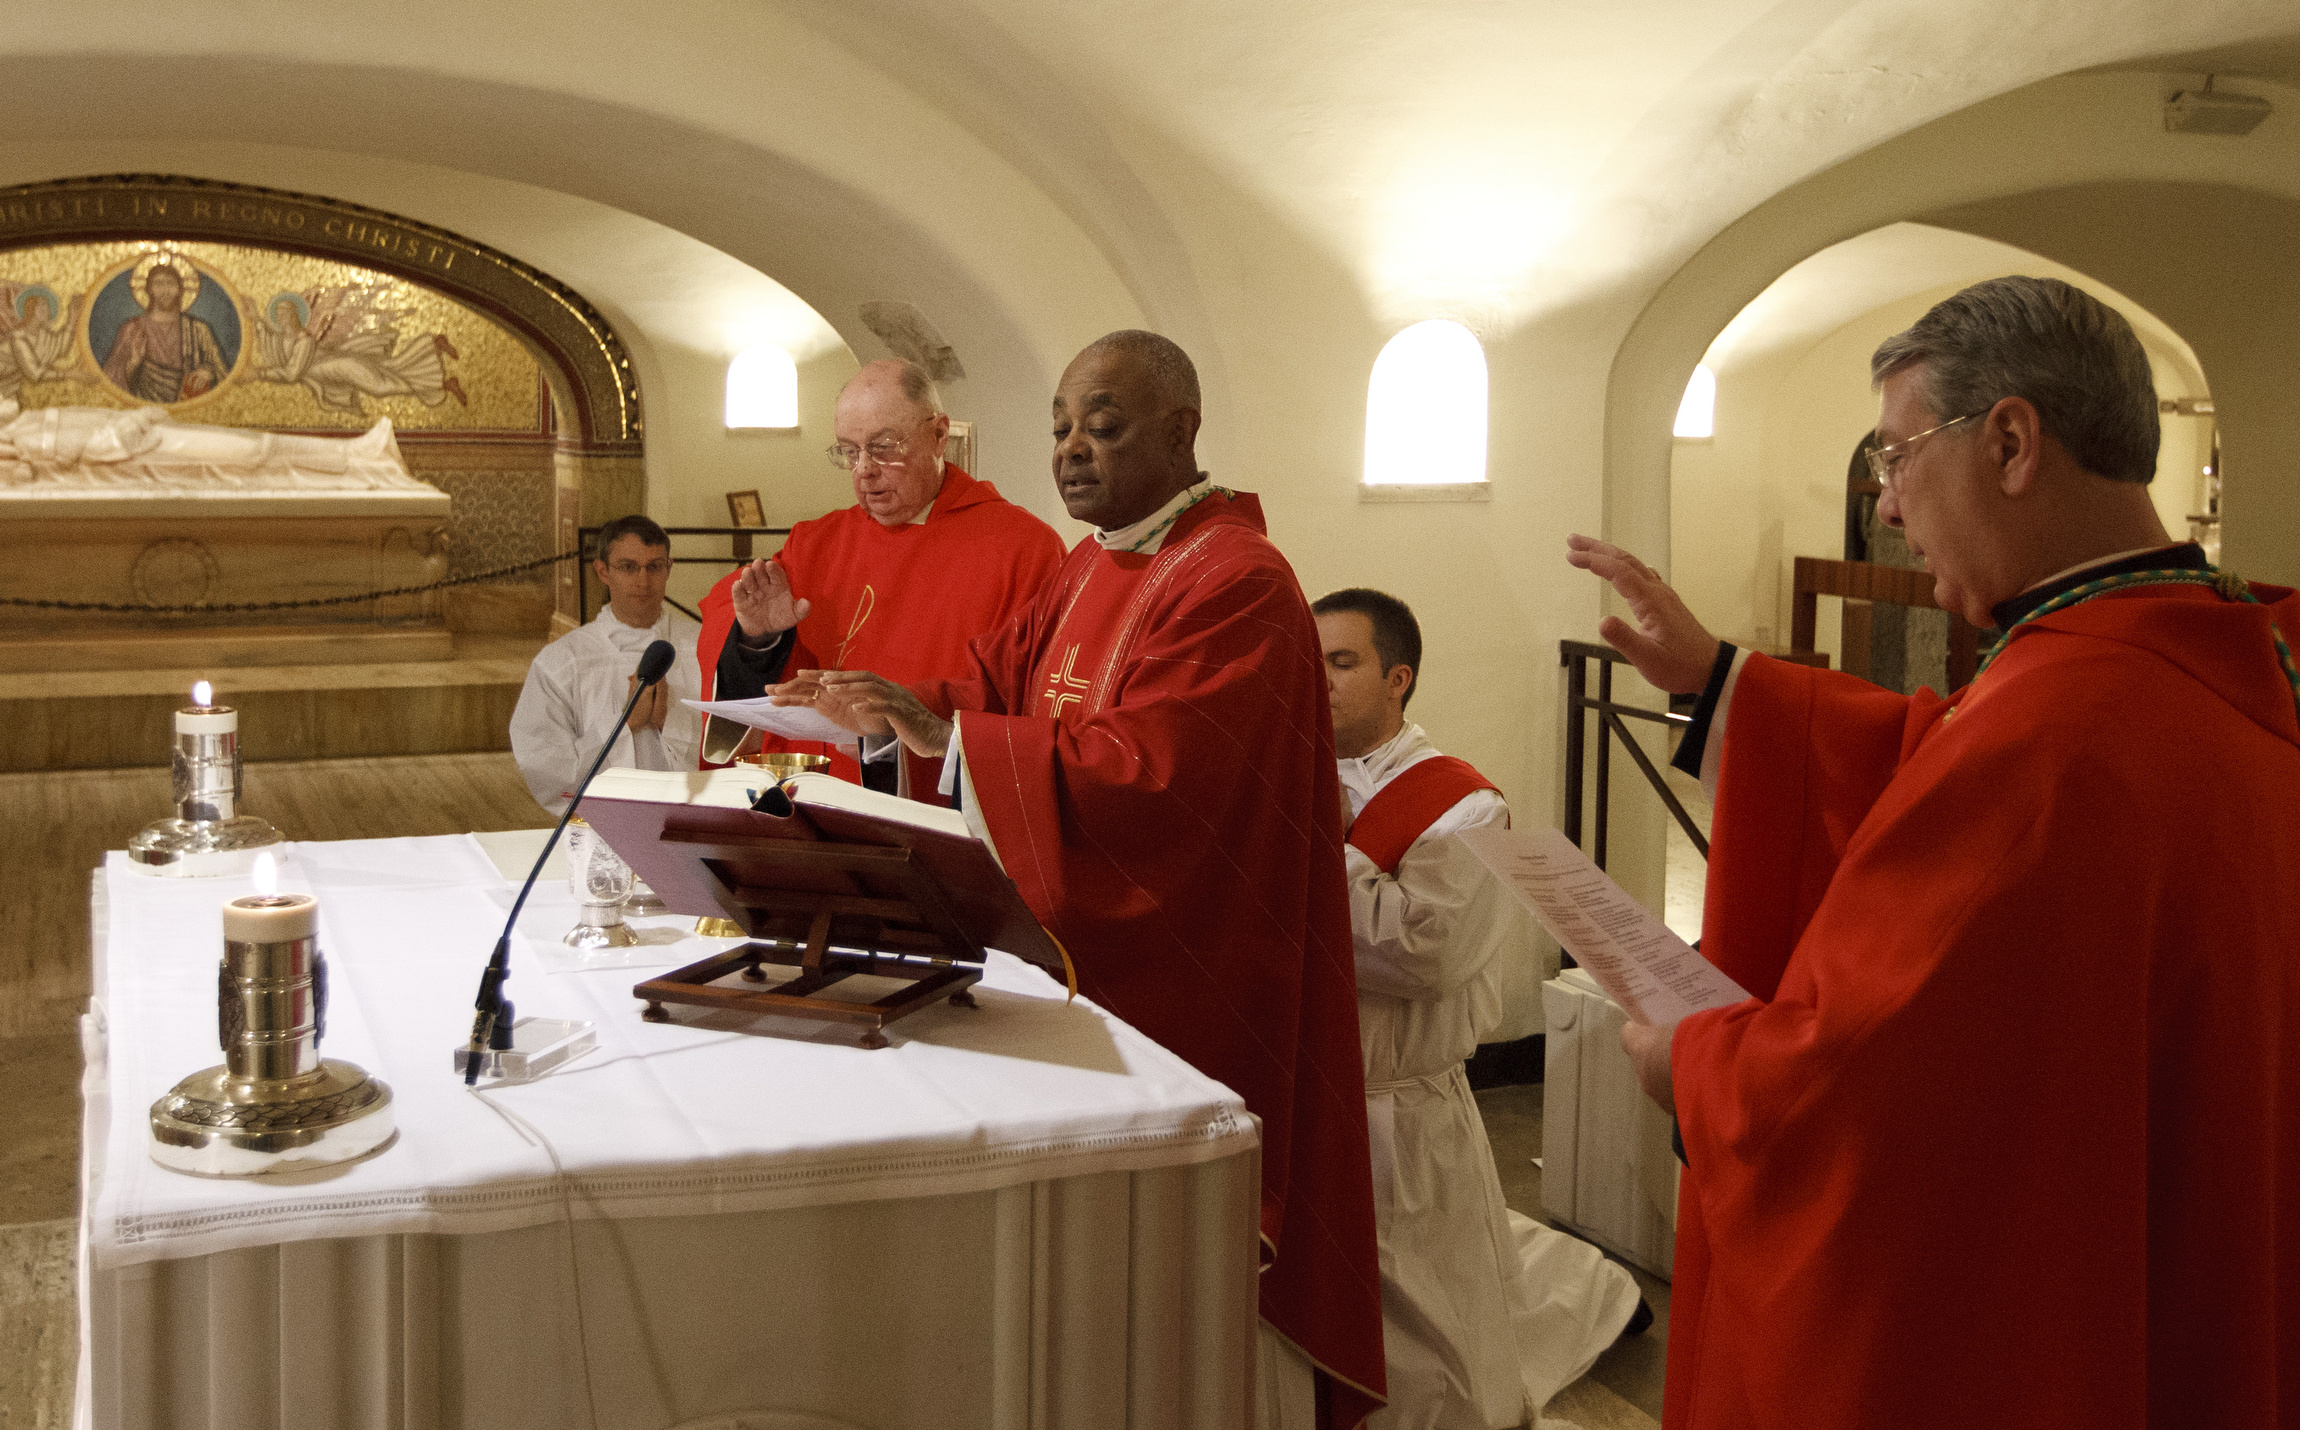 Archbishop Gregory: The time is right to review Mass